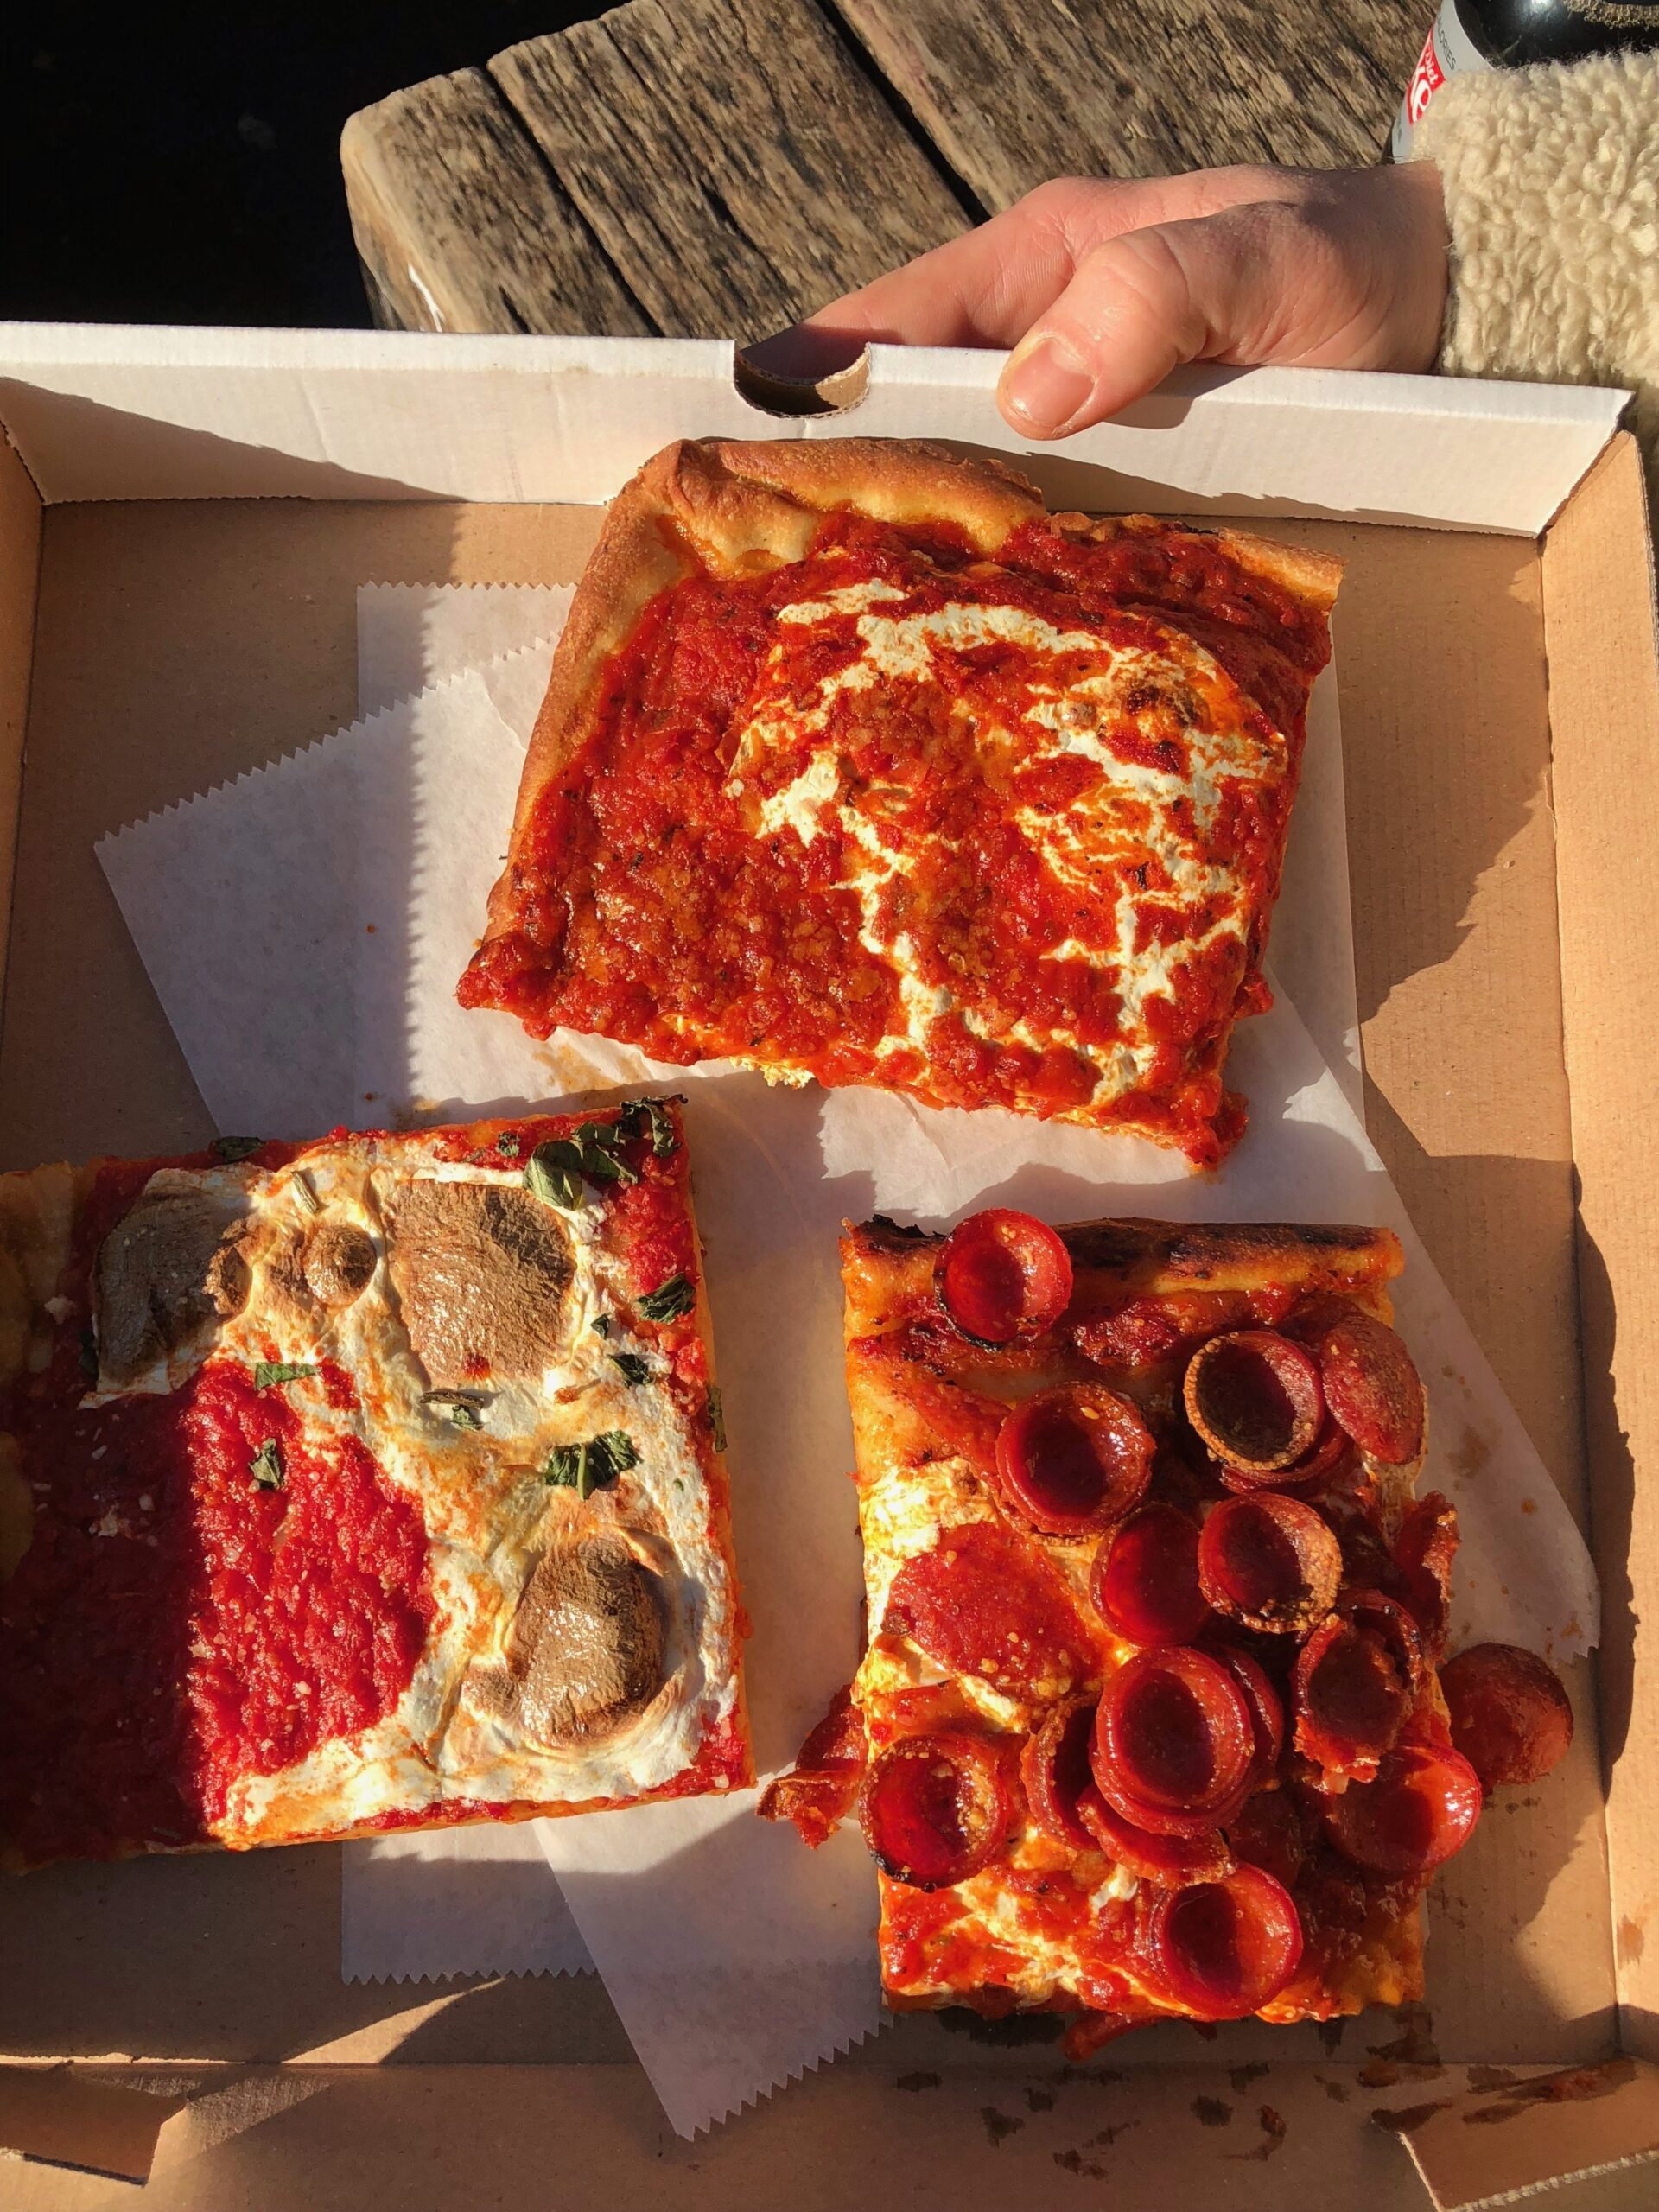 best types of nyc pizzas, nyc pizzas, new york city pizza, best pizza in NYC, NYC pizza